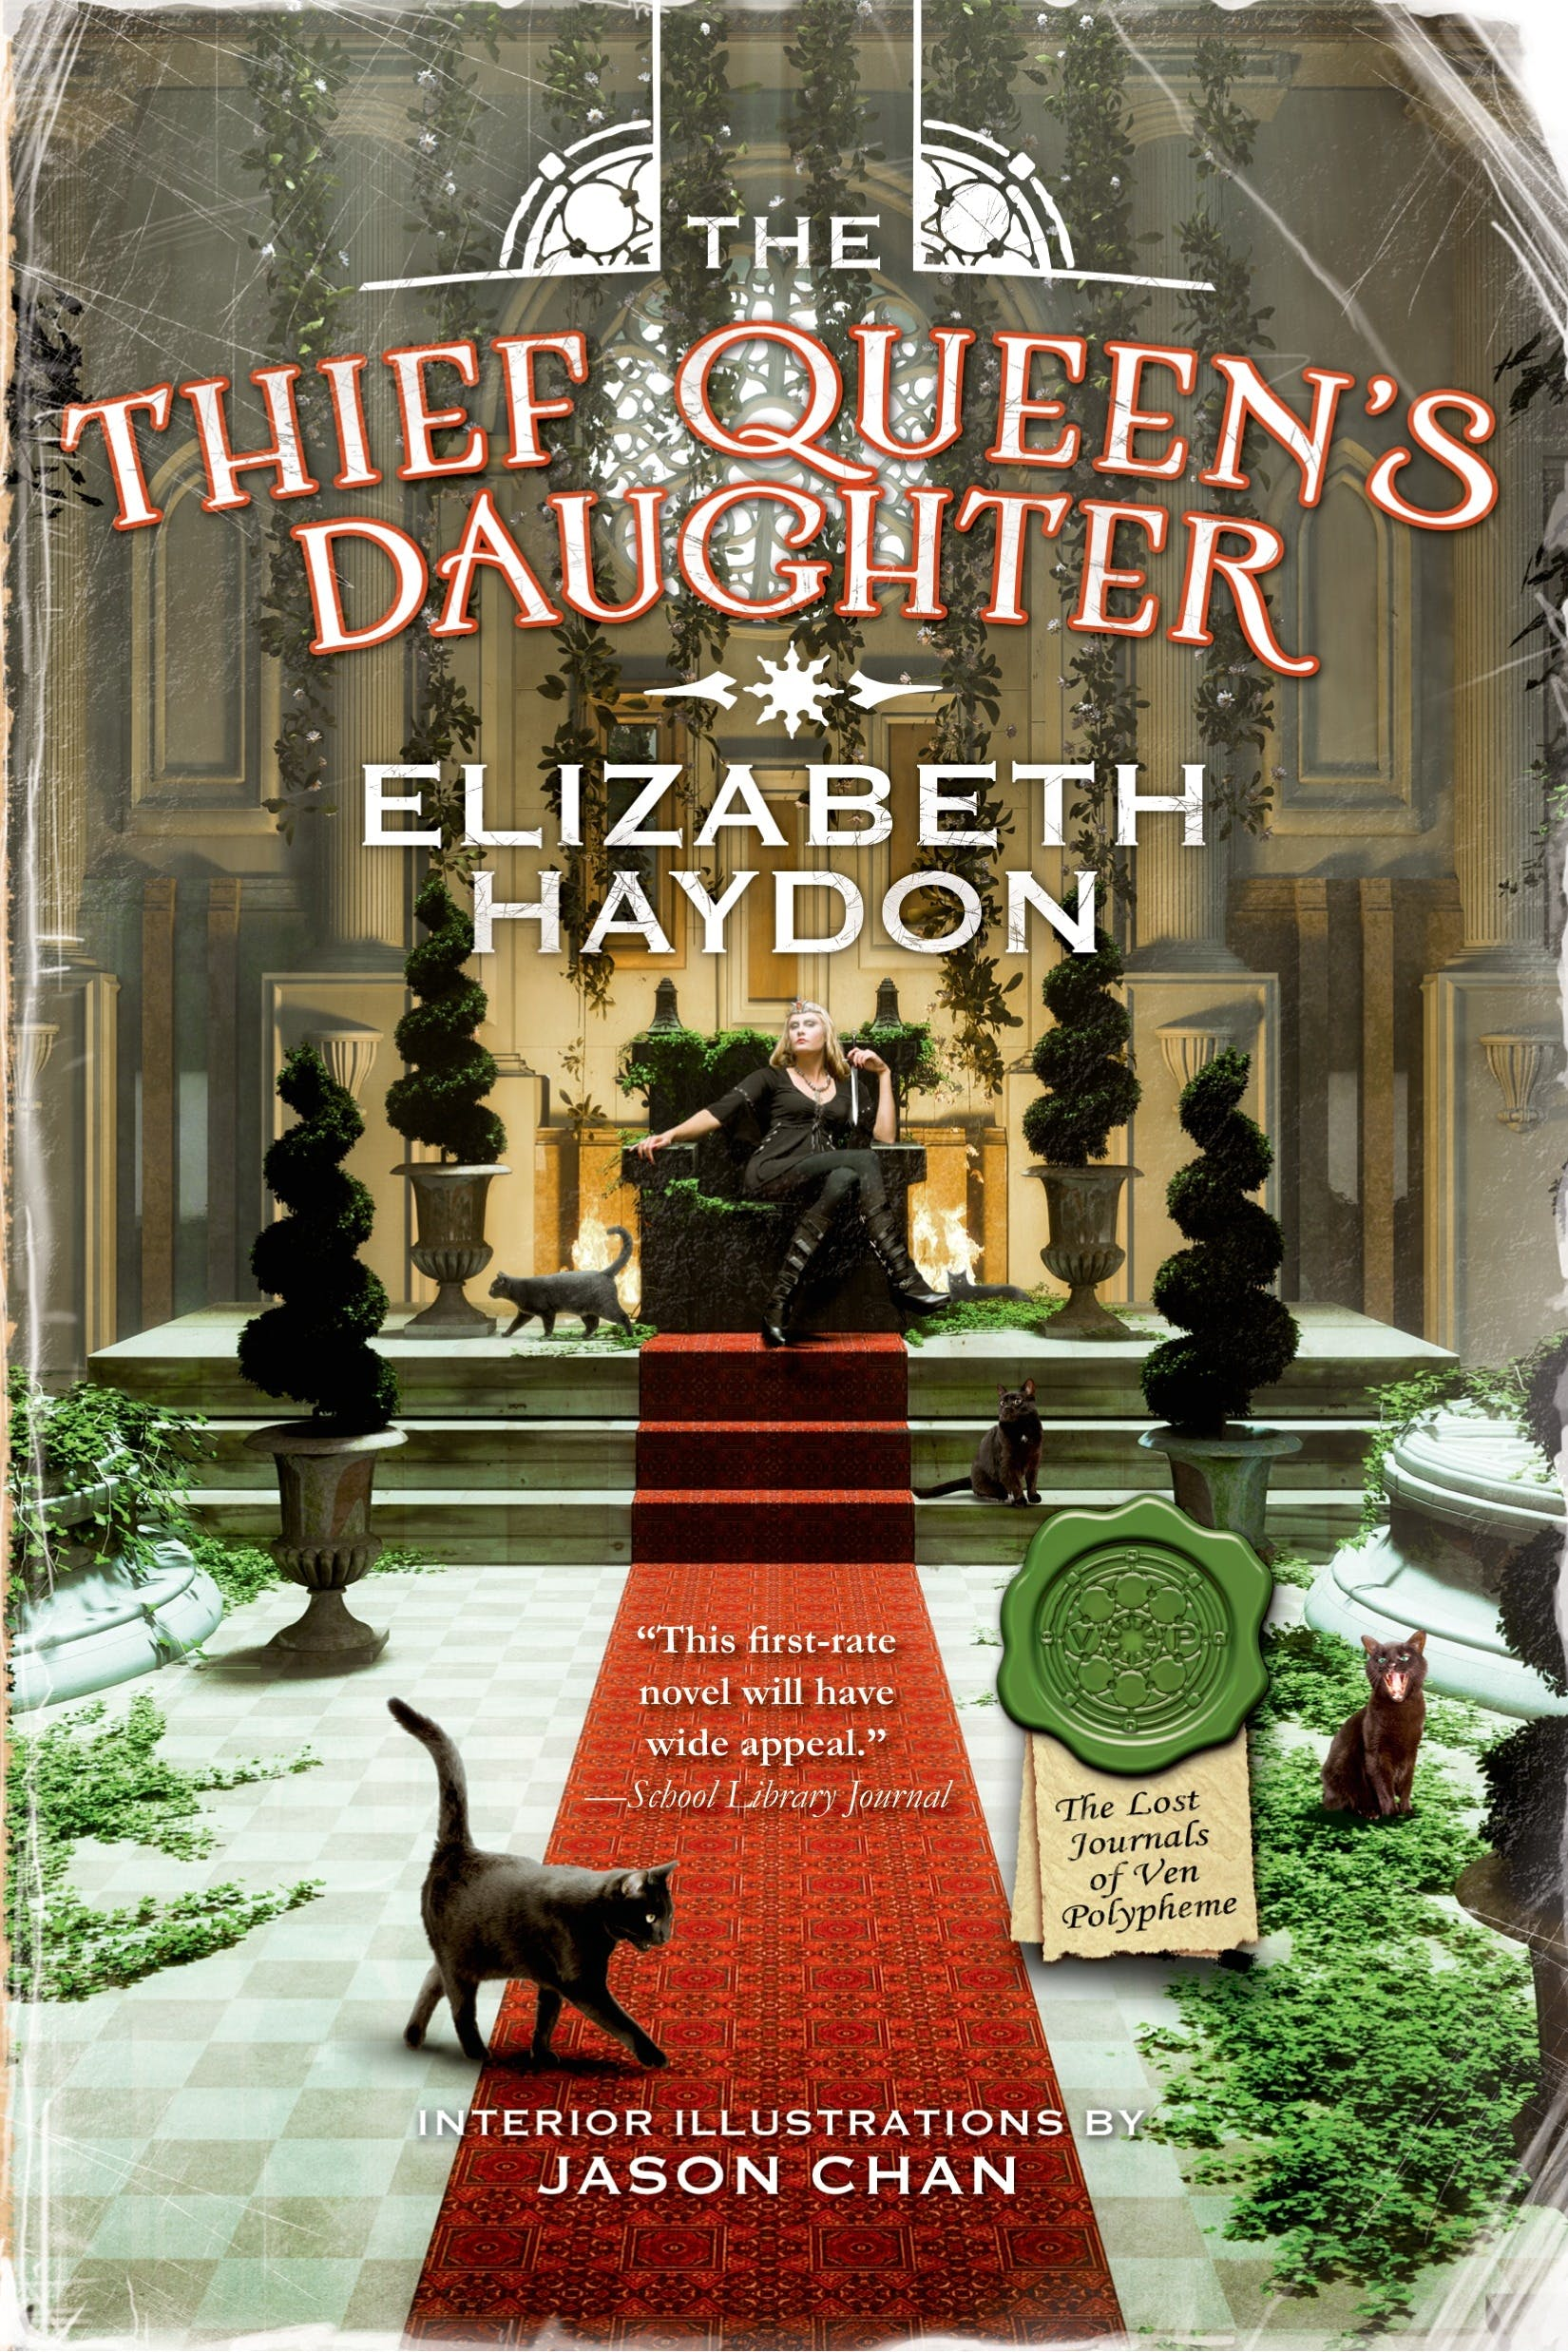 Image of The Thief Queen's Daughter